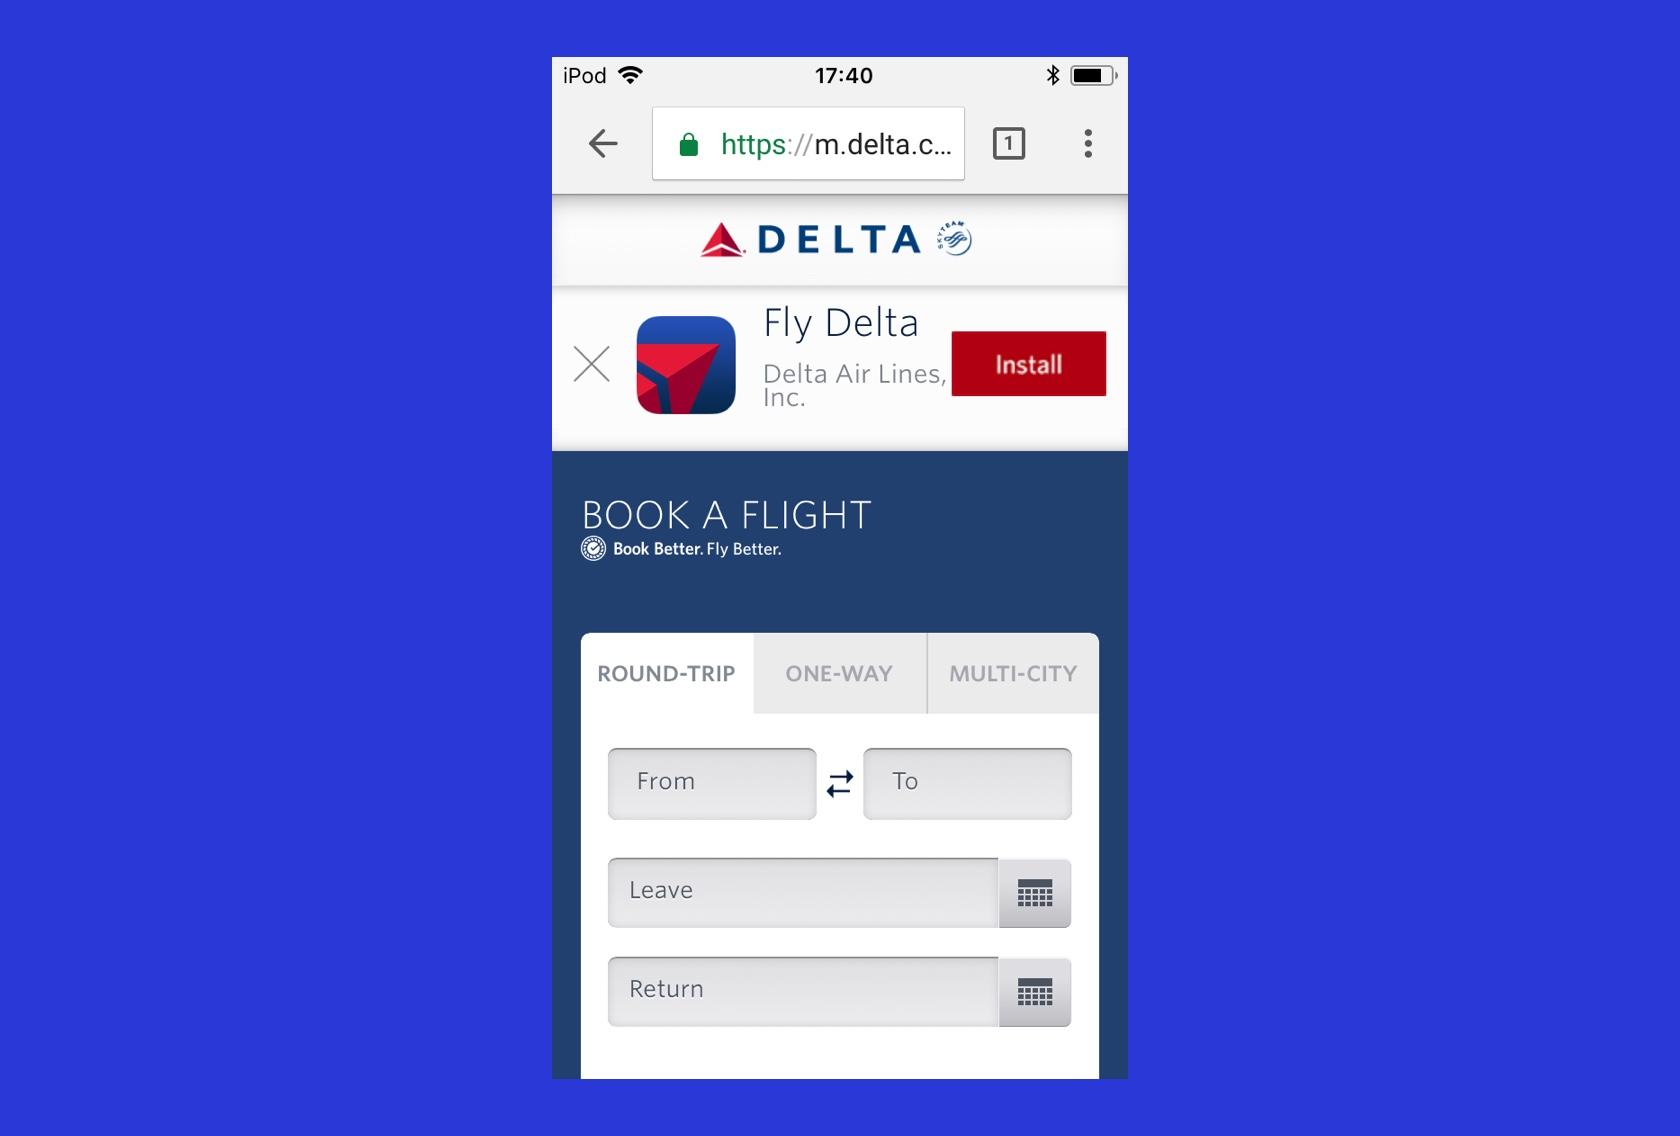 Delta's mobile website advertising their mobile app